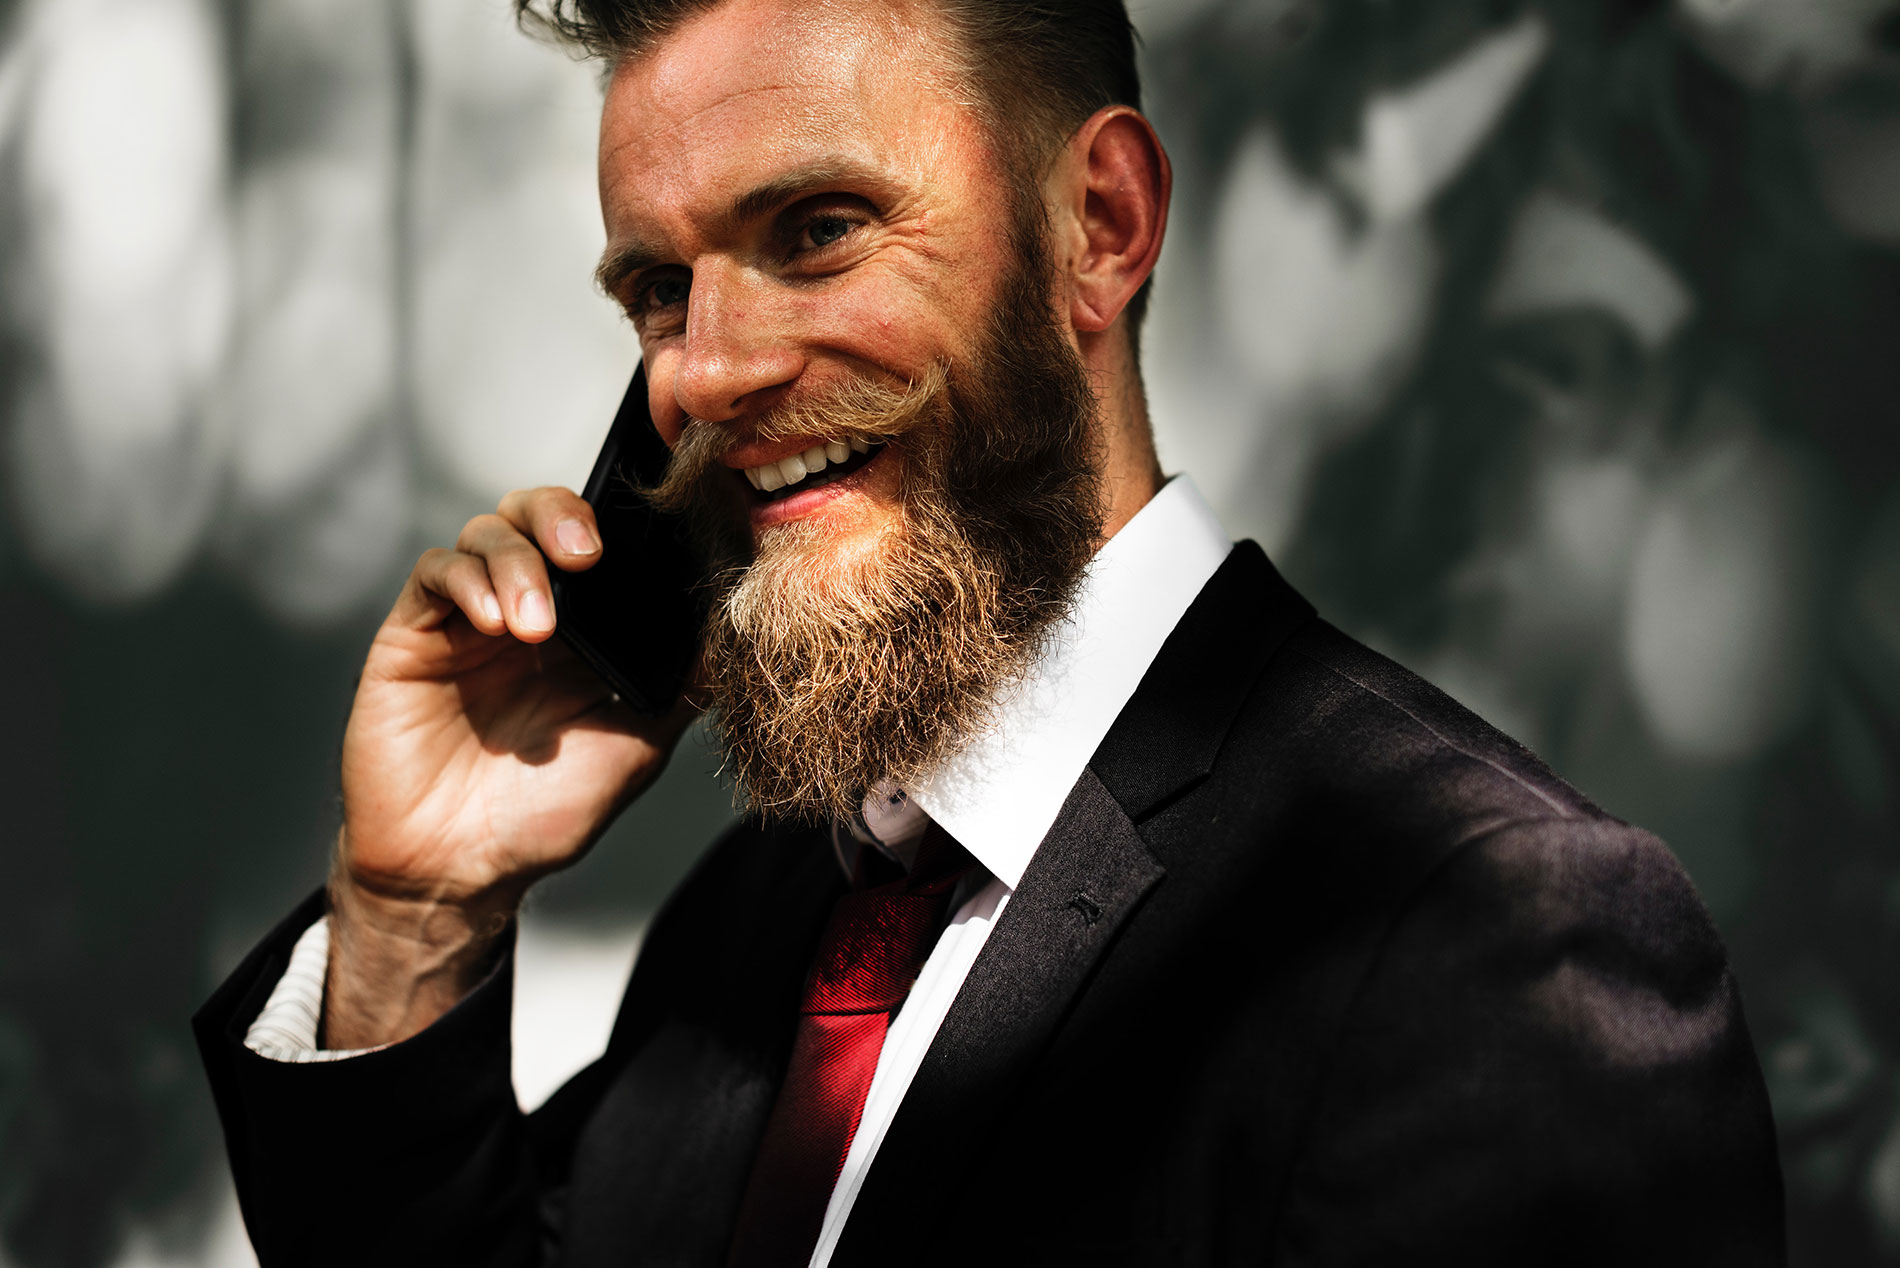 adult-beard-businessman-401685